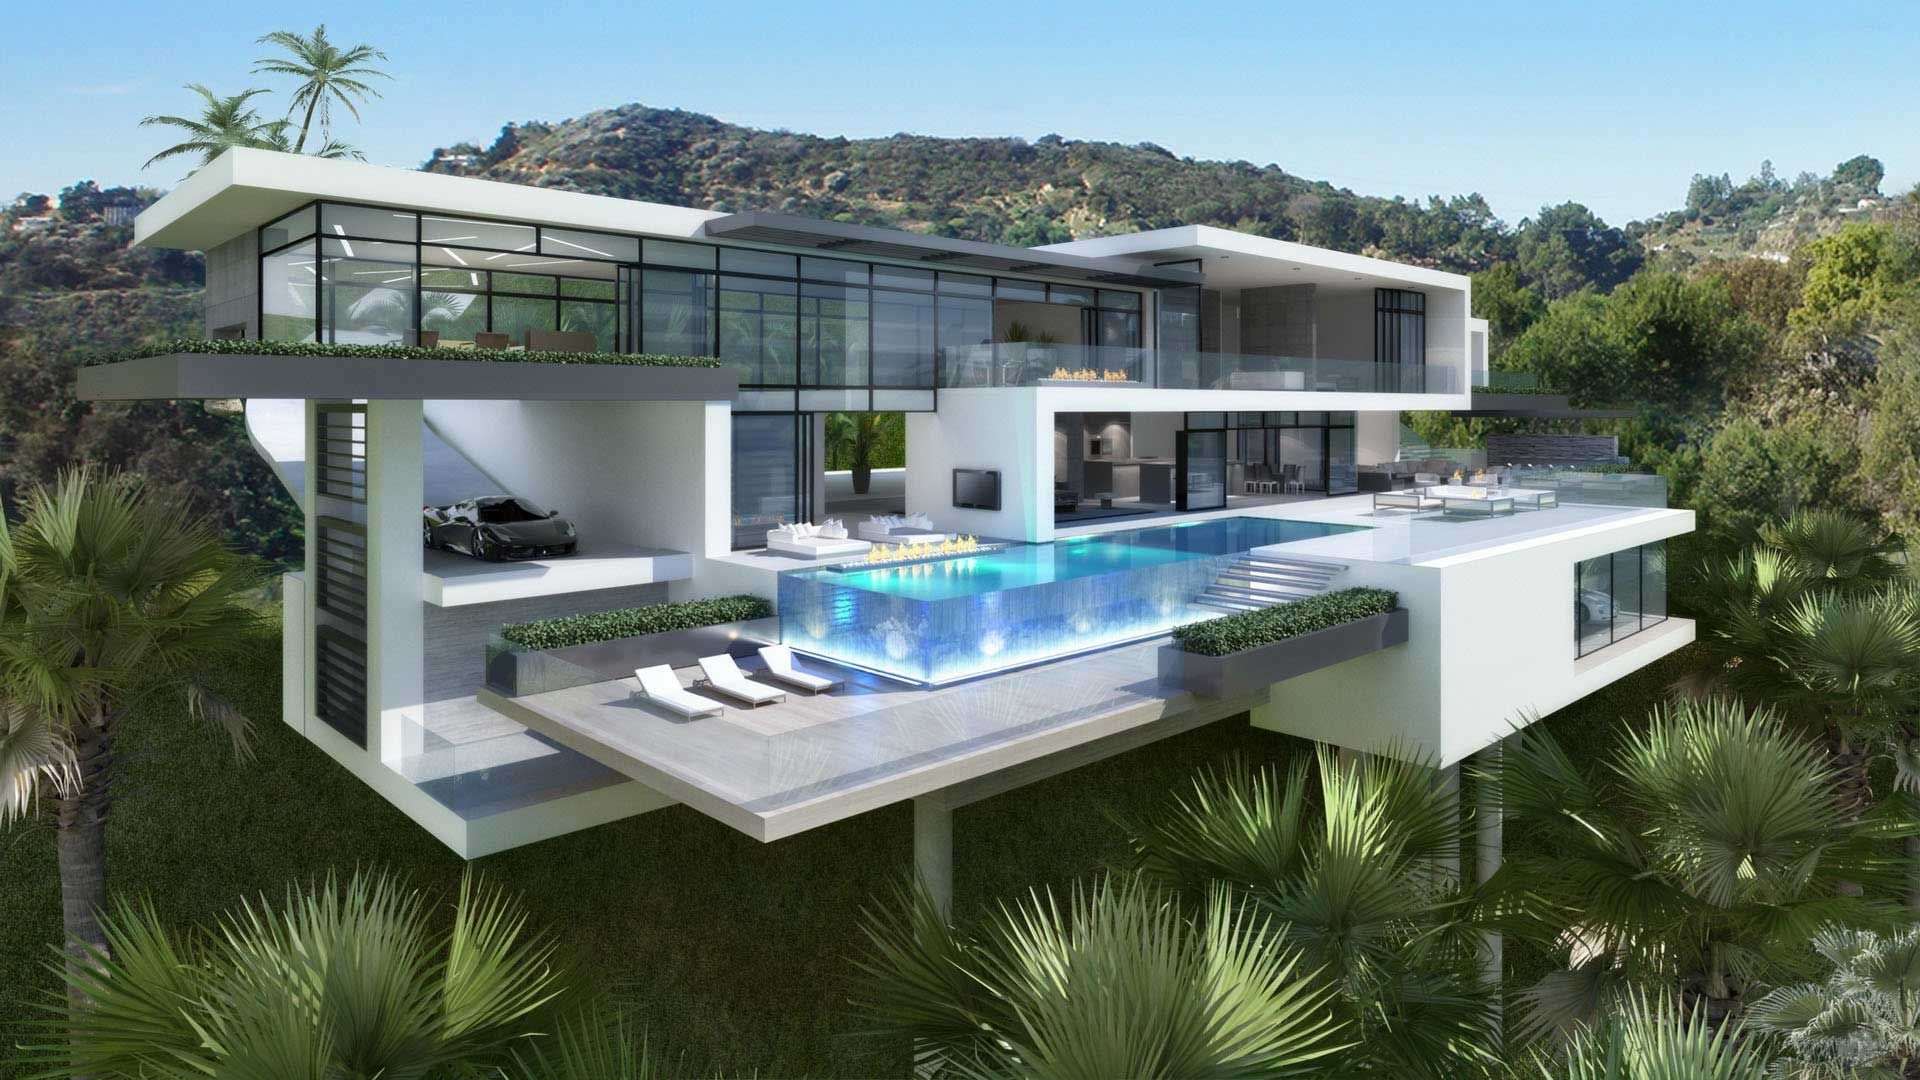 Luxury ultramodern mansions on sunset plaza drive in los angeles caandesign online luxury architecture